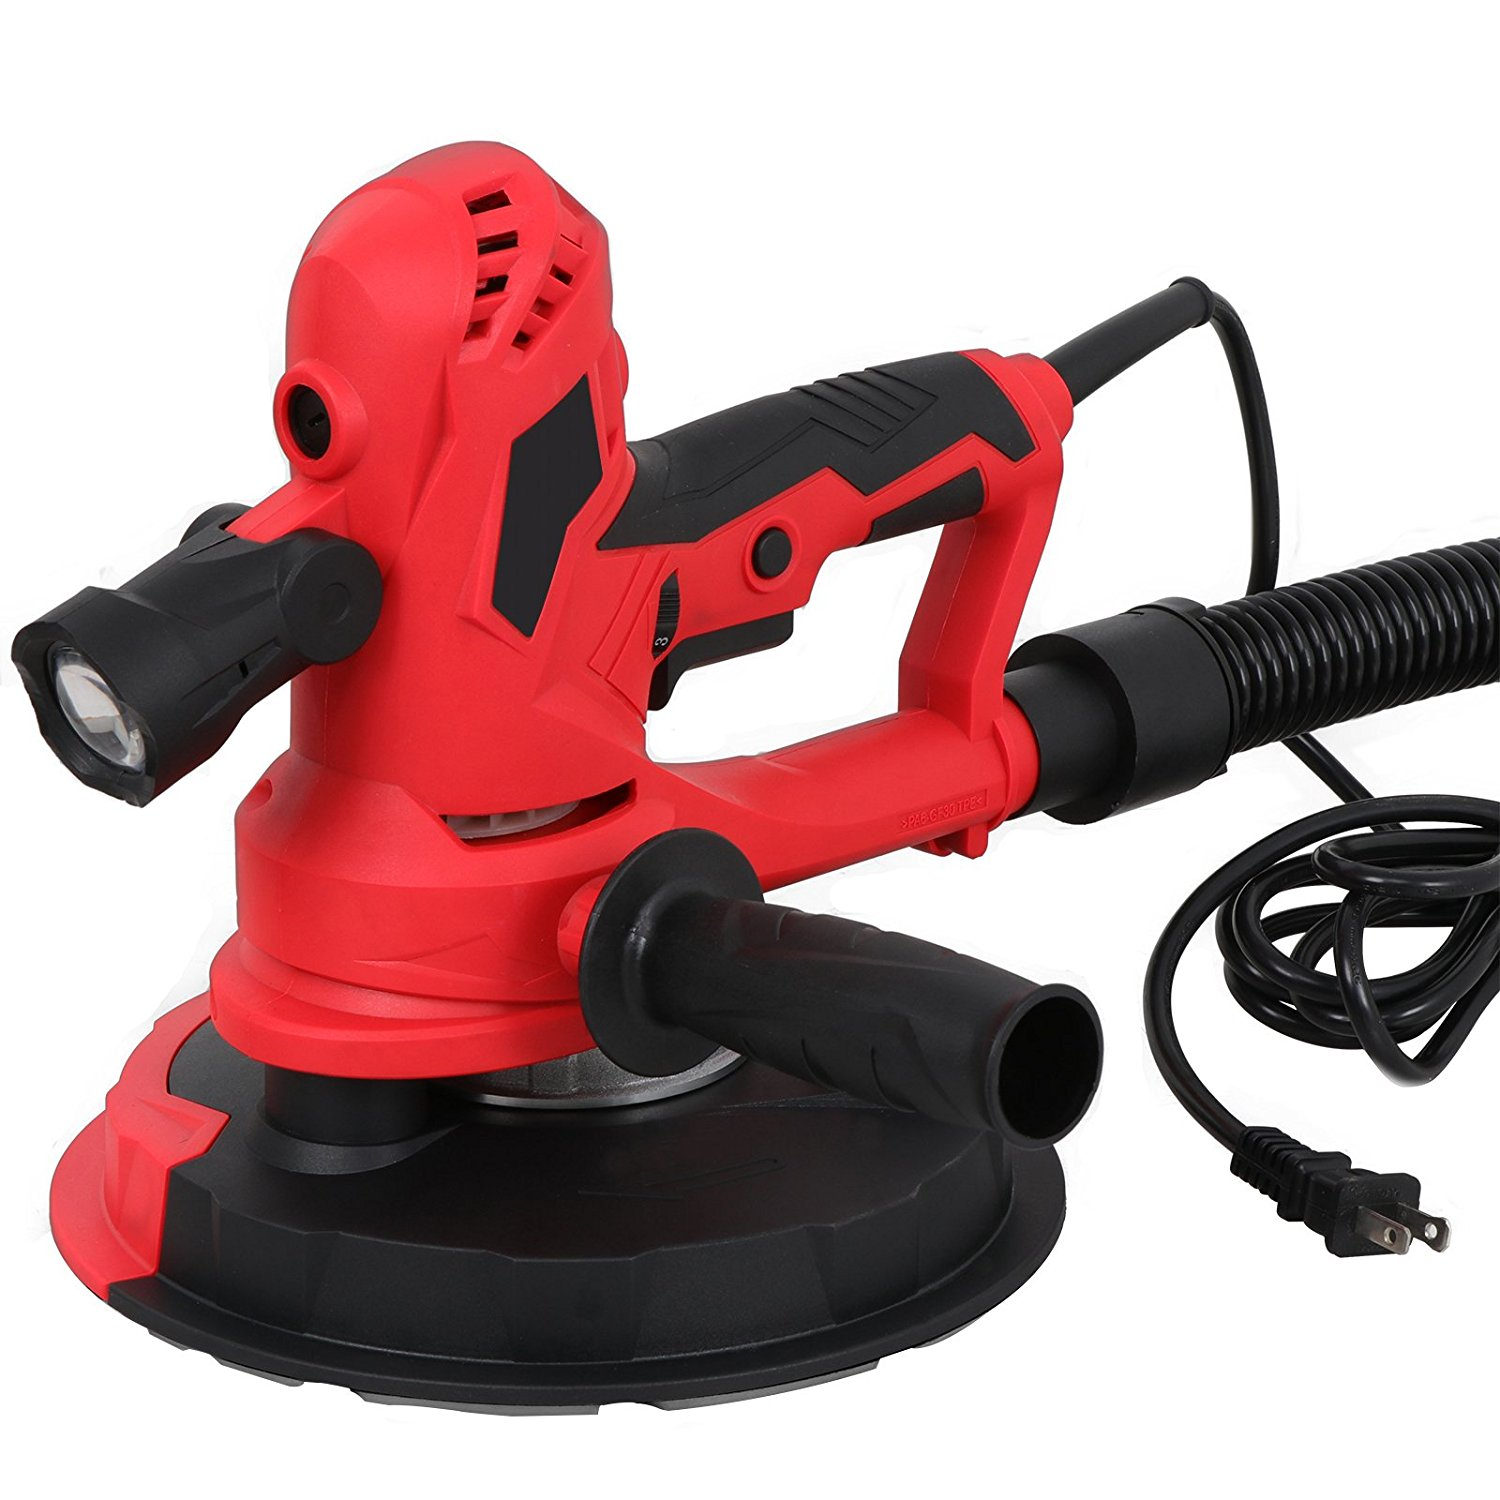 Handheld disk sander bathroom suites and showers